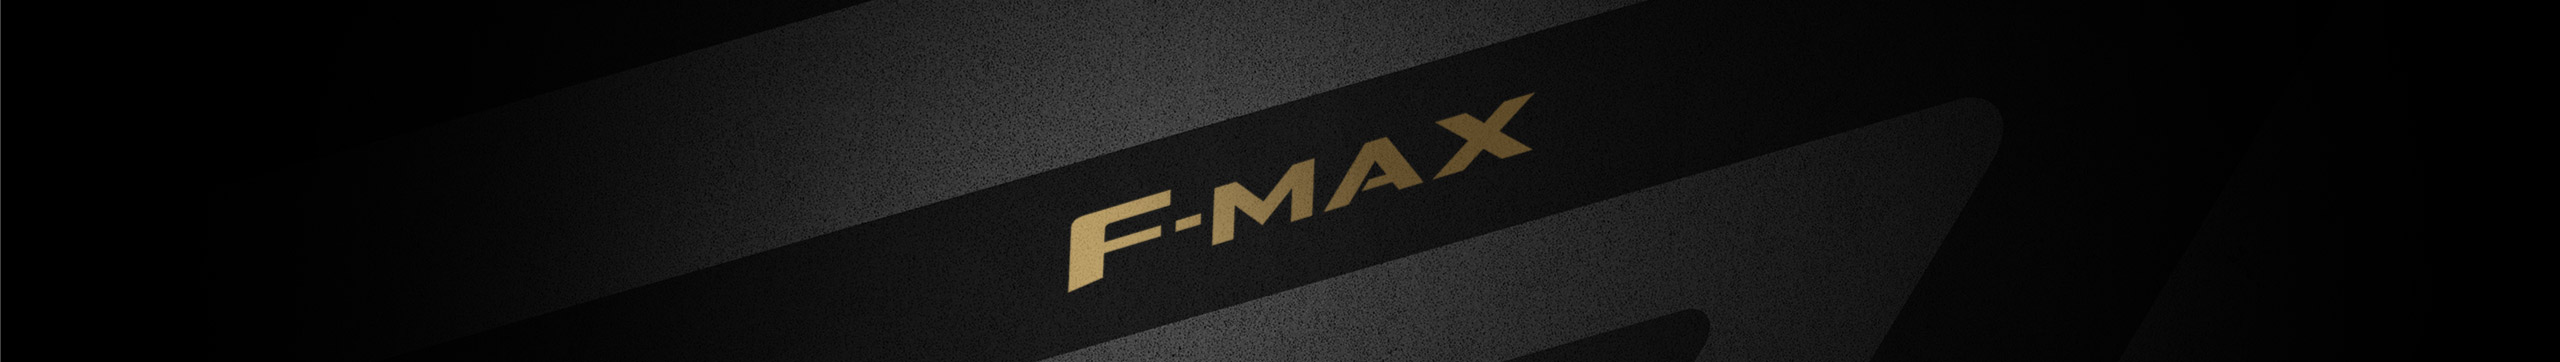 Check Out the Whole Family of Cobra F-MAX Clubs!